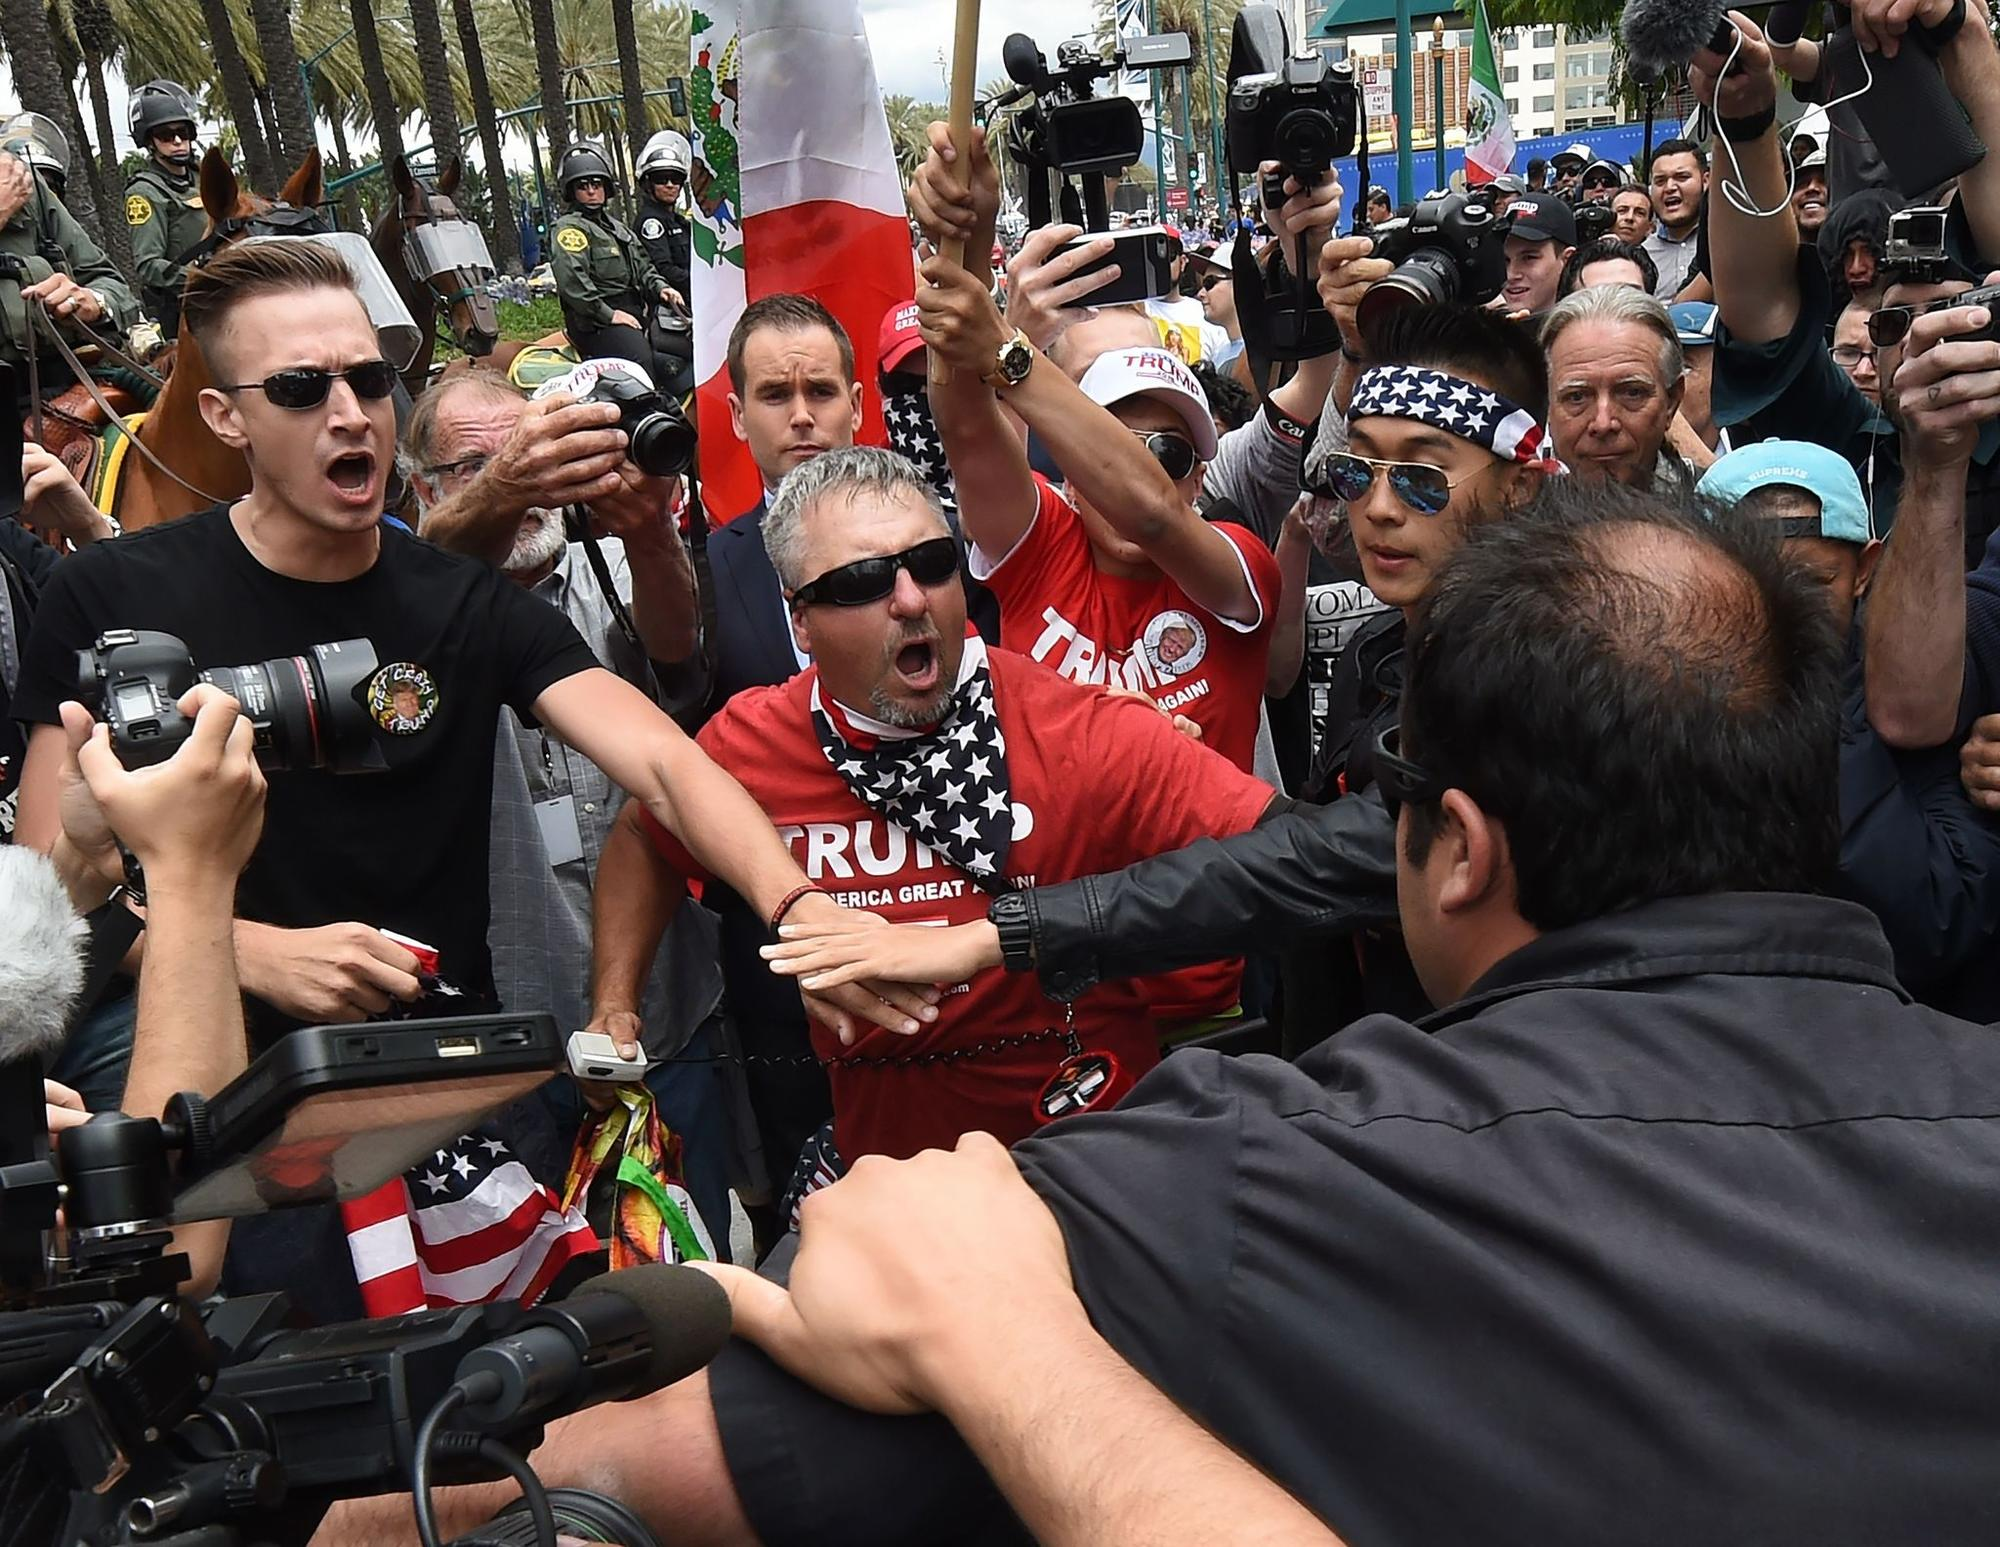 Anti-Trump protesters clash with Trump supporters outside the Anaheim Convention Center during a rally on May 25.